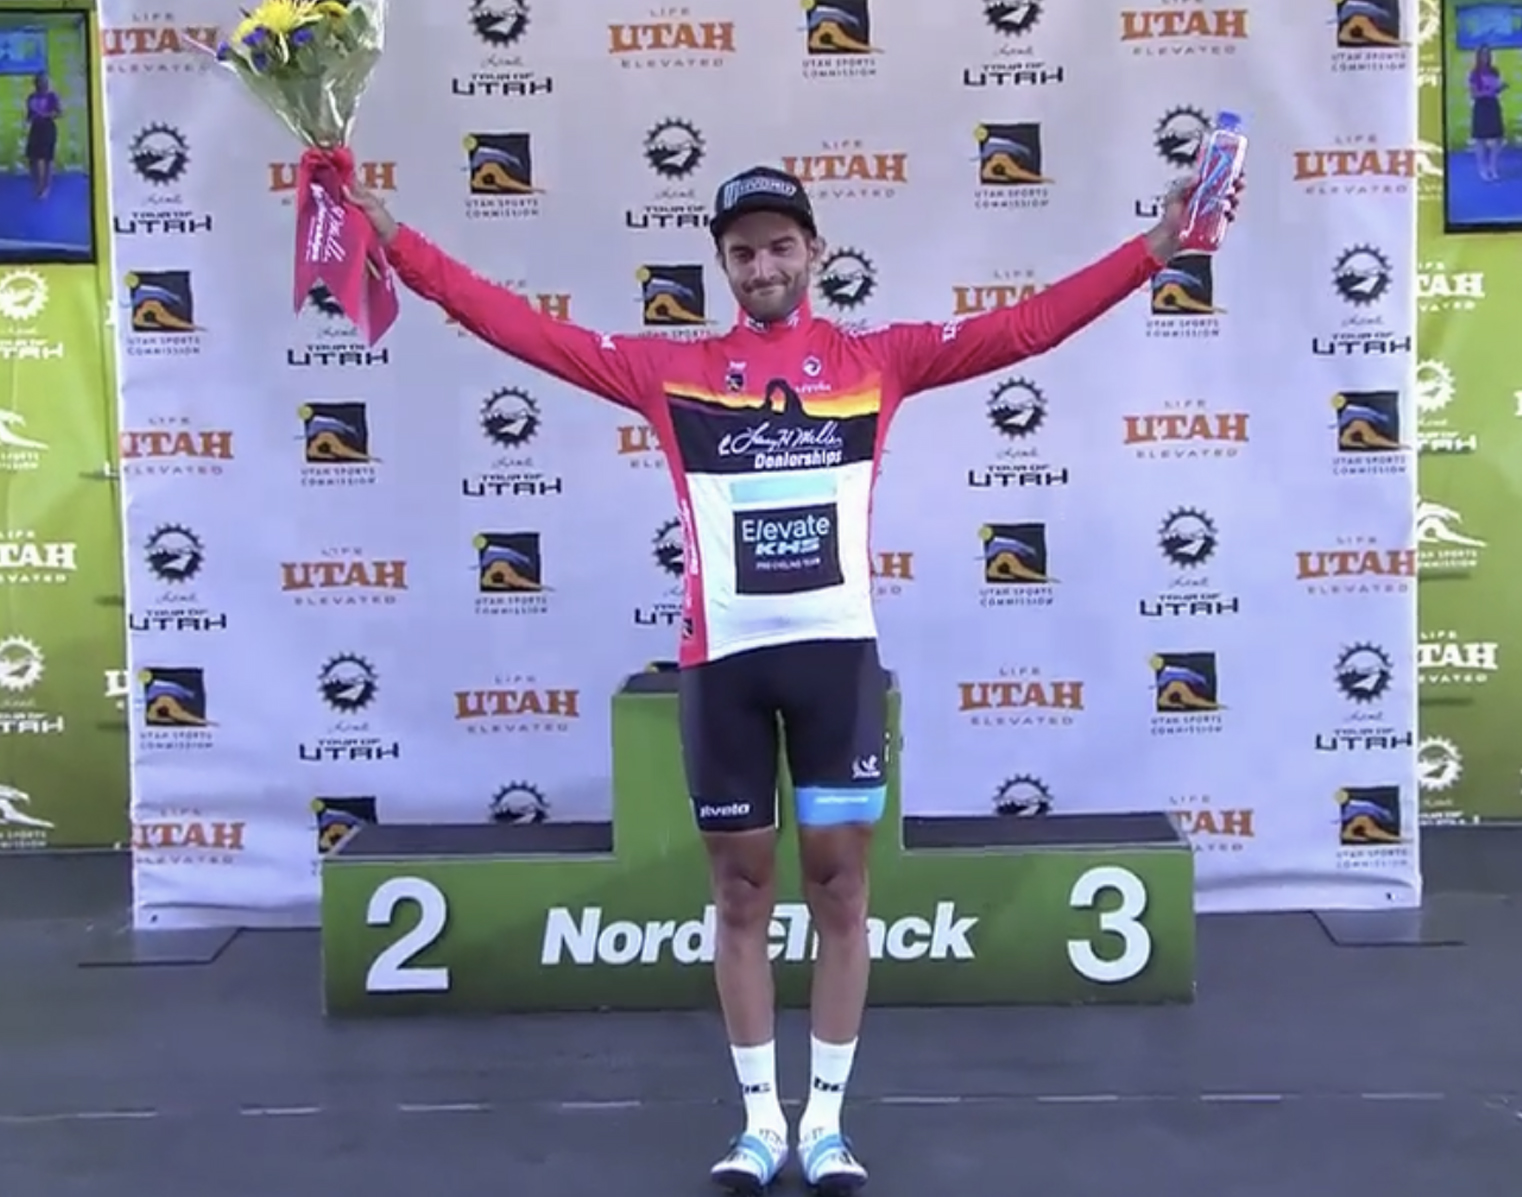 James on the Tour of Utah podium